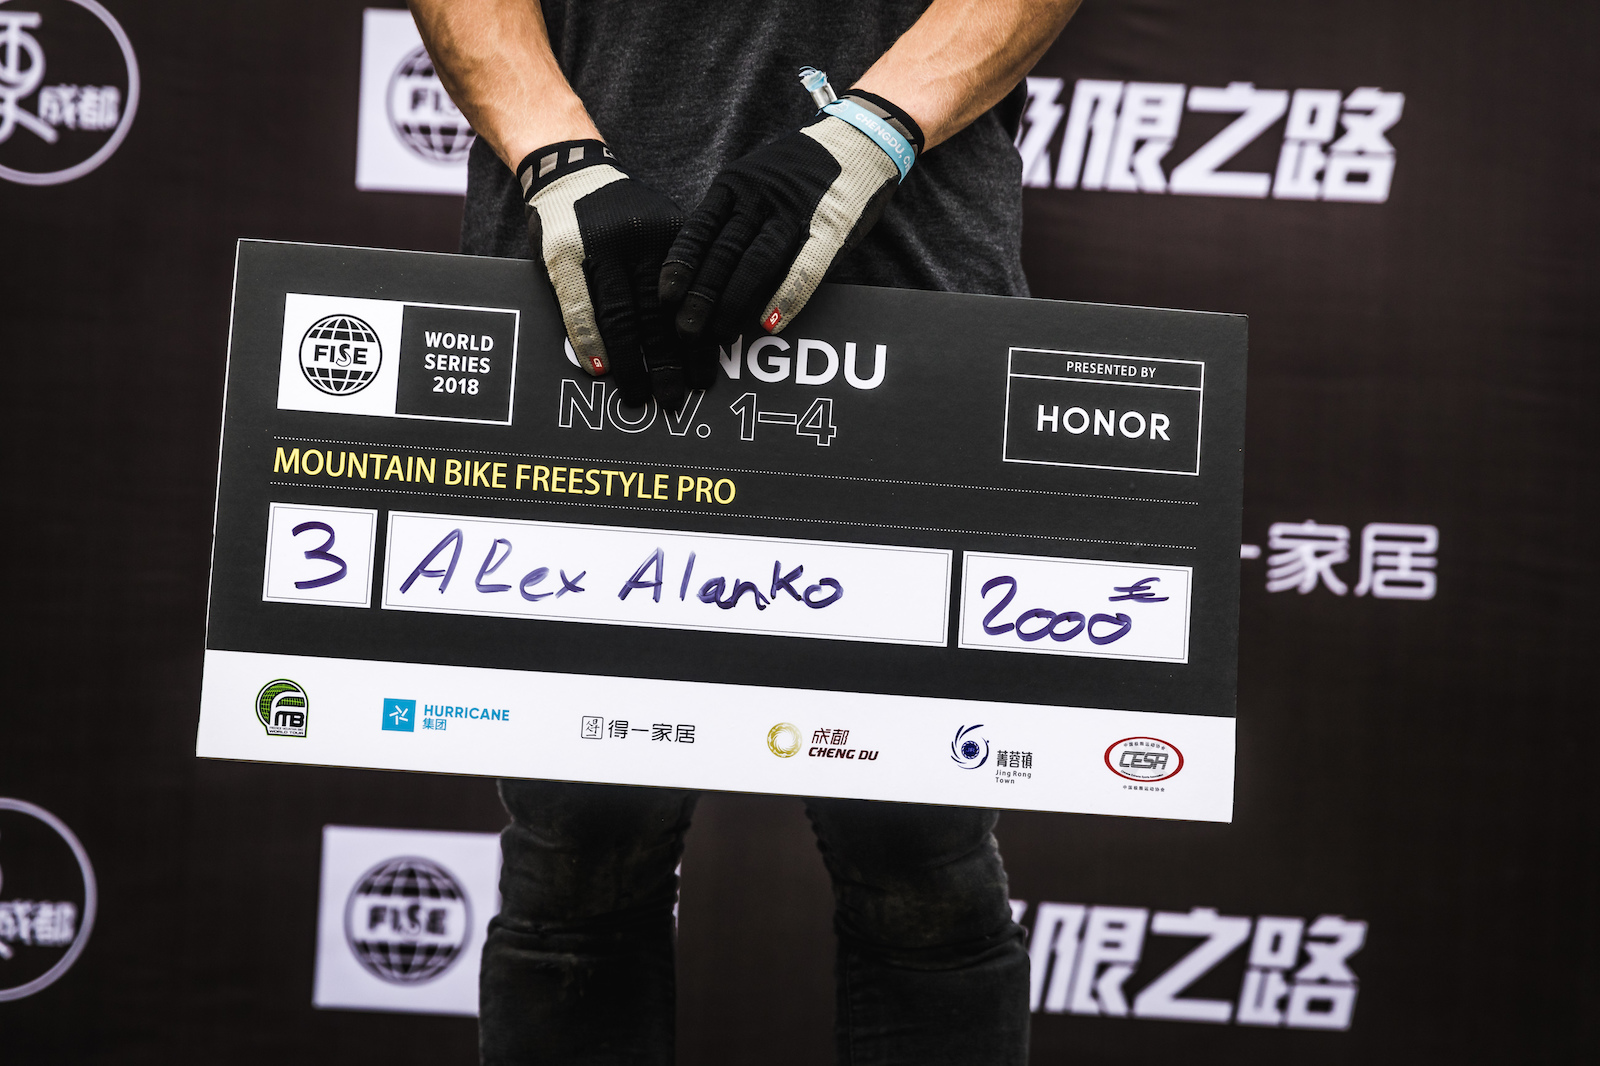 It was hardly surprising to see Alex Alanko make the podium this afternoon given the show he s treated us to these past few days.